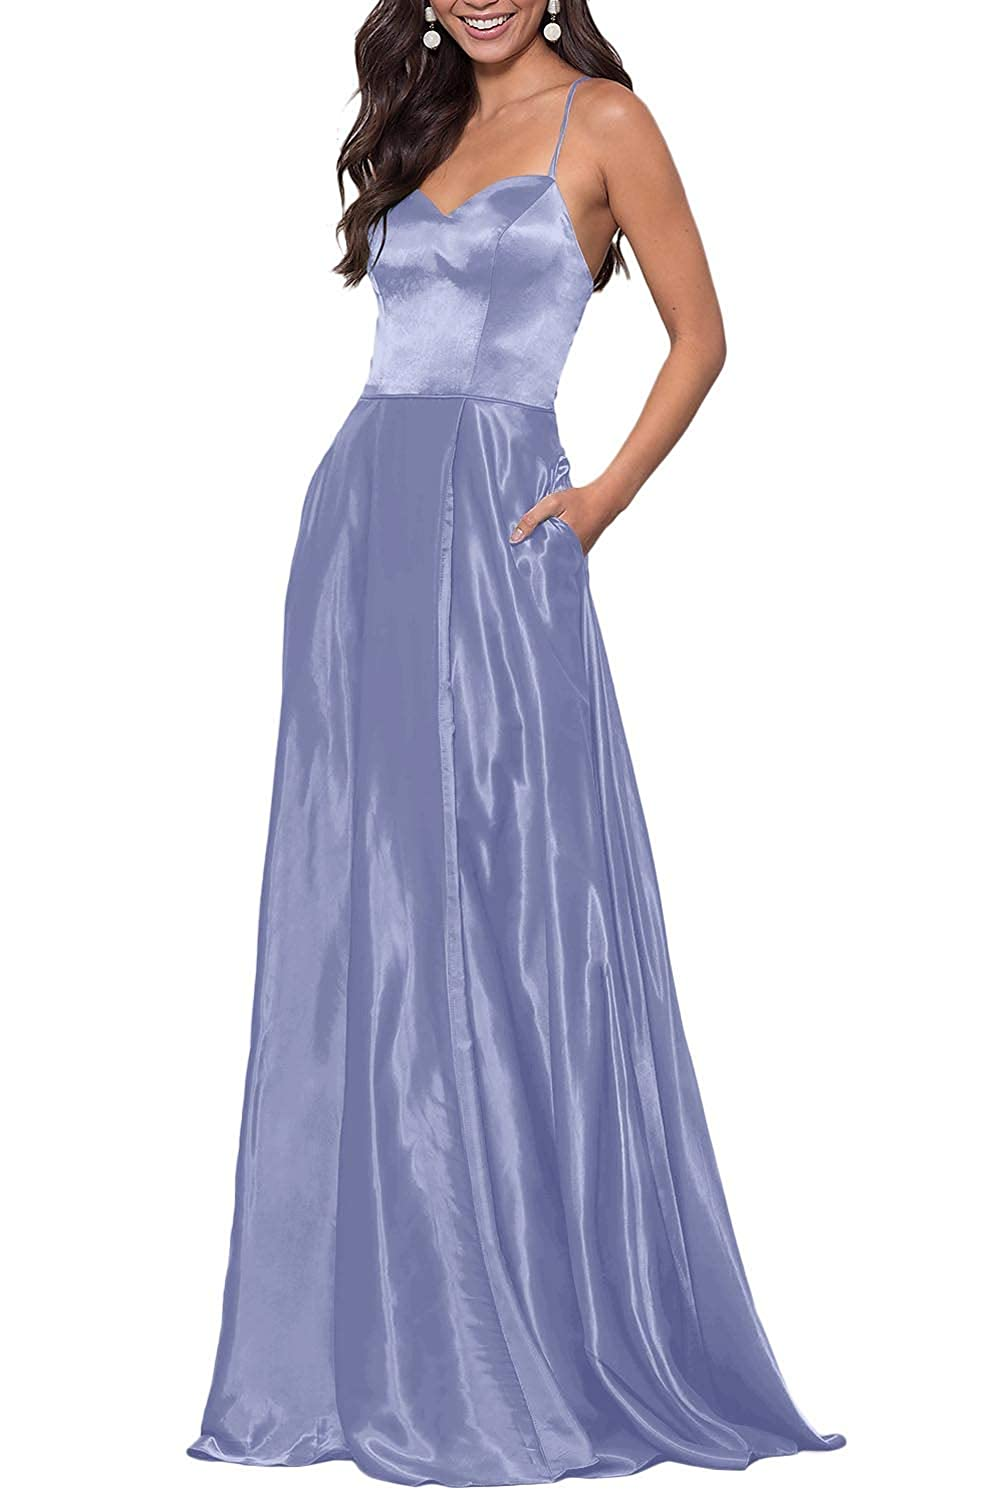 Lavender YUSHENGSM Women's Sweetheart CorsetBack Satin Prom Dress Long Evening Party Gown Pockets